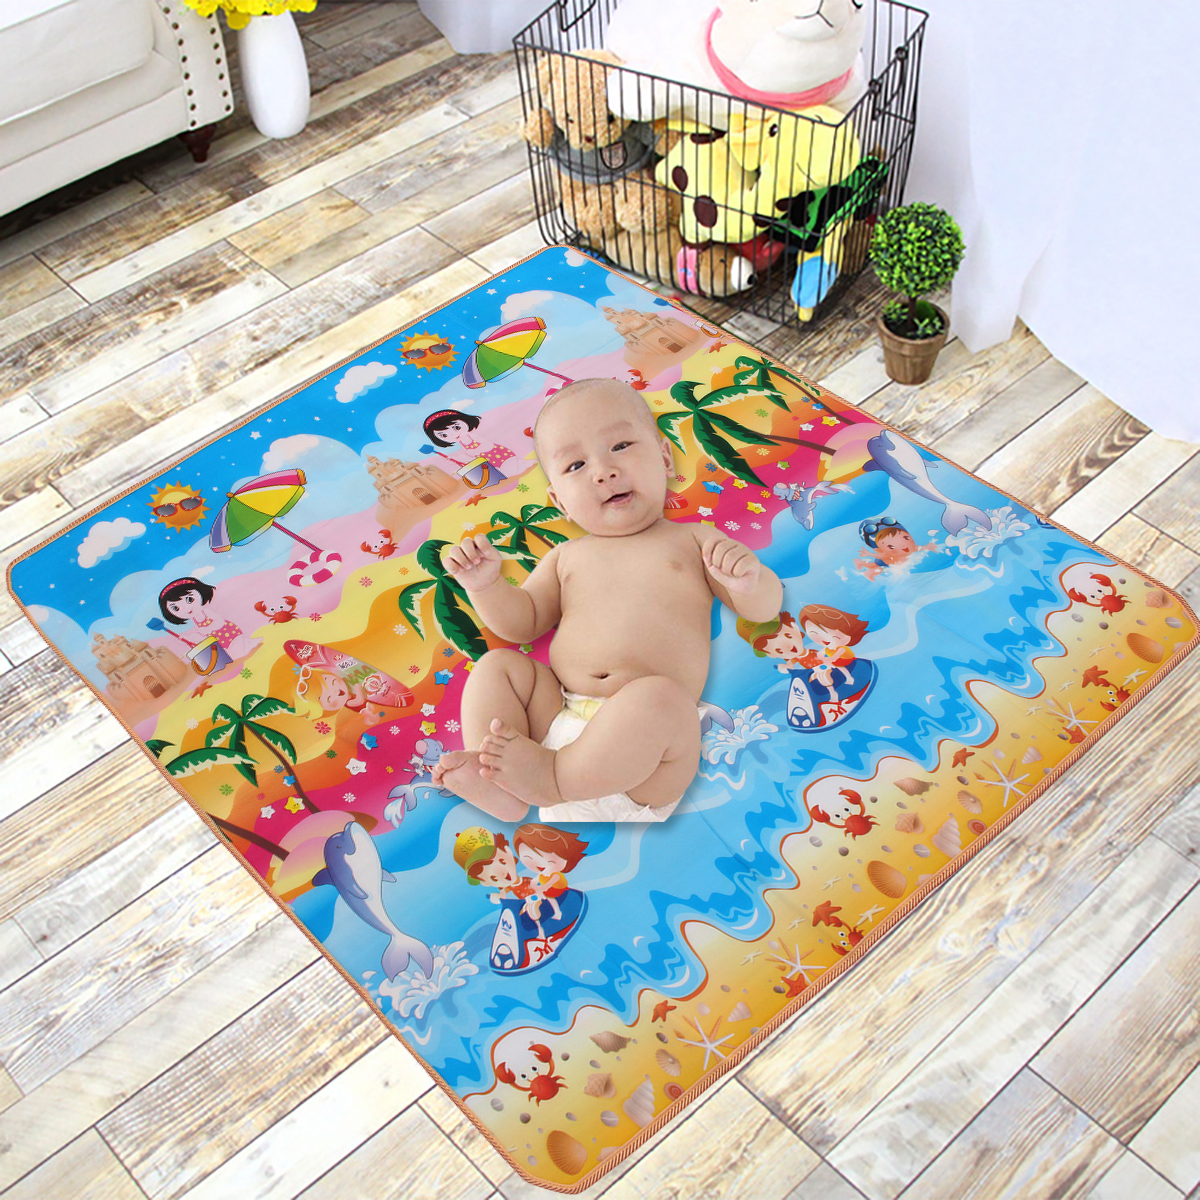 2x1.8m Double Sided Baby Kids Play Mat Foam Floor Activity Soft Gym Crawl Creeping Blanket